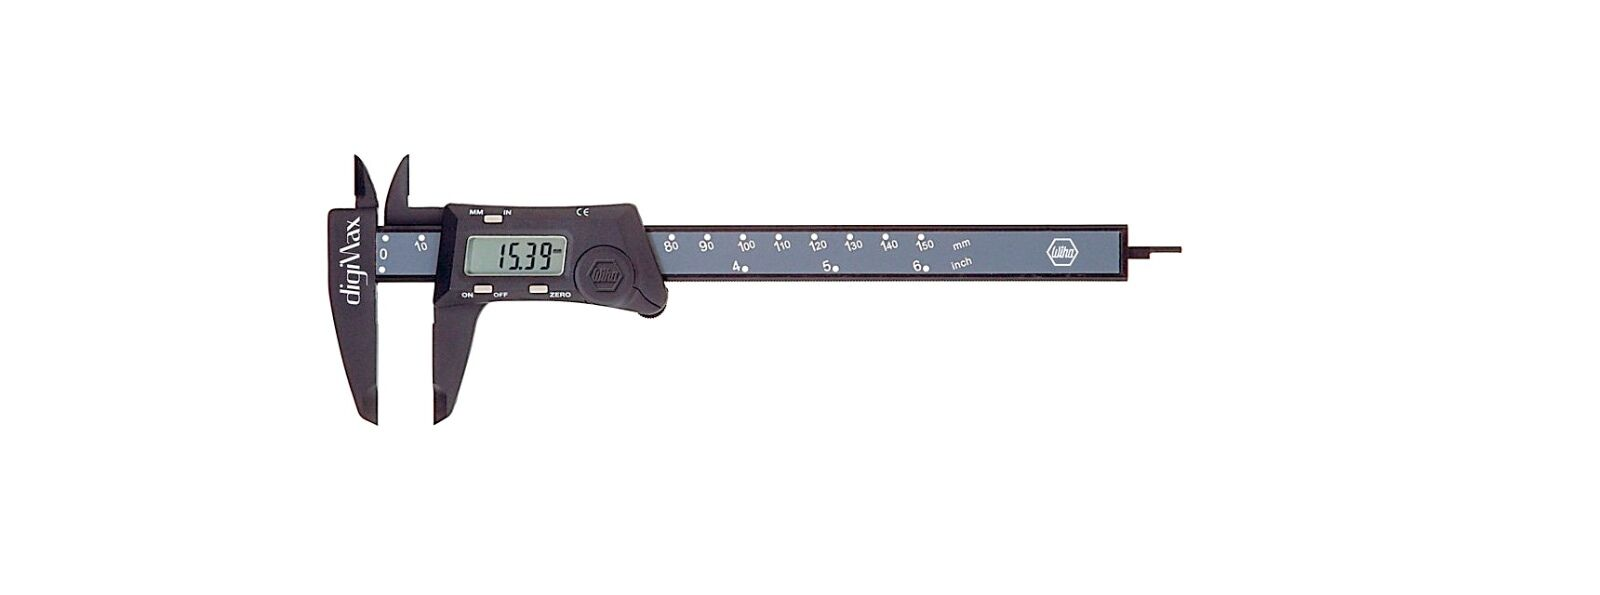 Wiha 6 Inch Range Digital Electronic Caliper DigiMax - Made In Switzerland